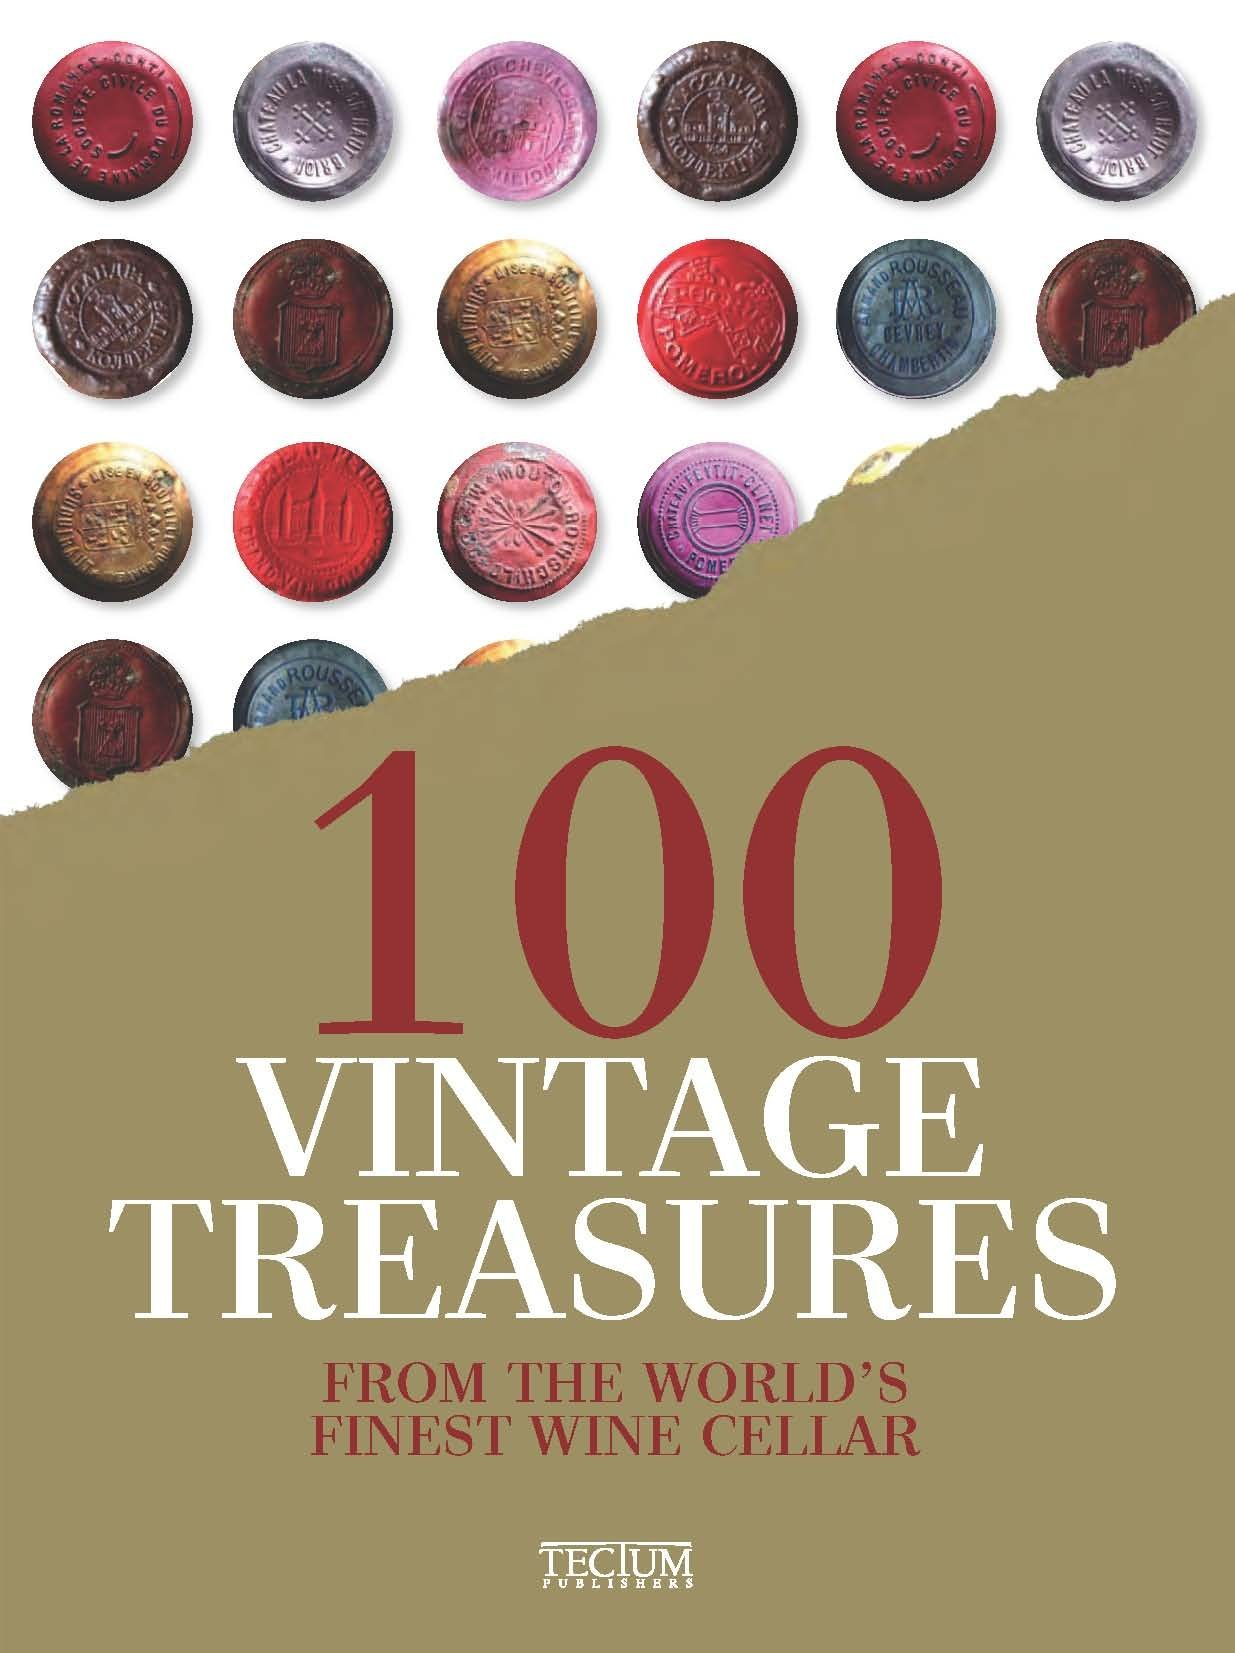 100 Vintage Treasures: From the World's Finest Wine Cellar by Michel-Jack  Chasseuil (3-Nov-2011) Hardcover: Amazon.com: Books